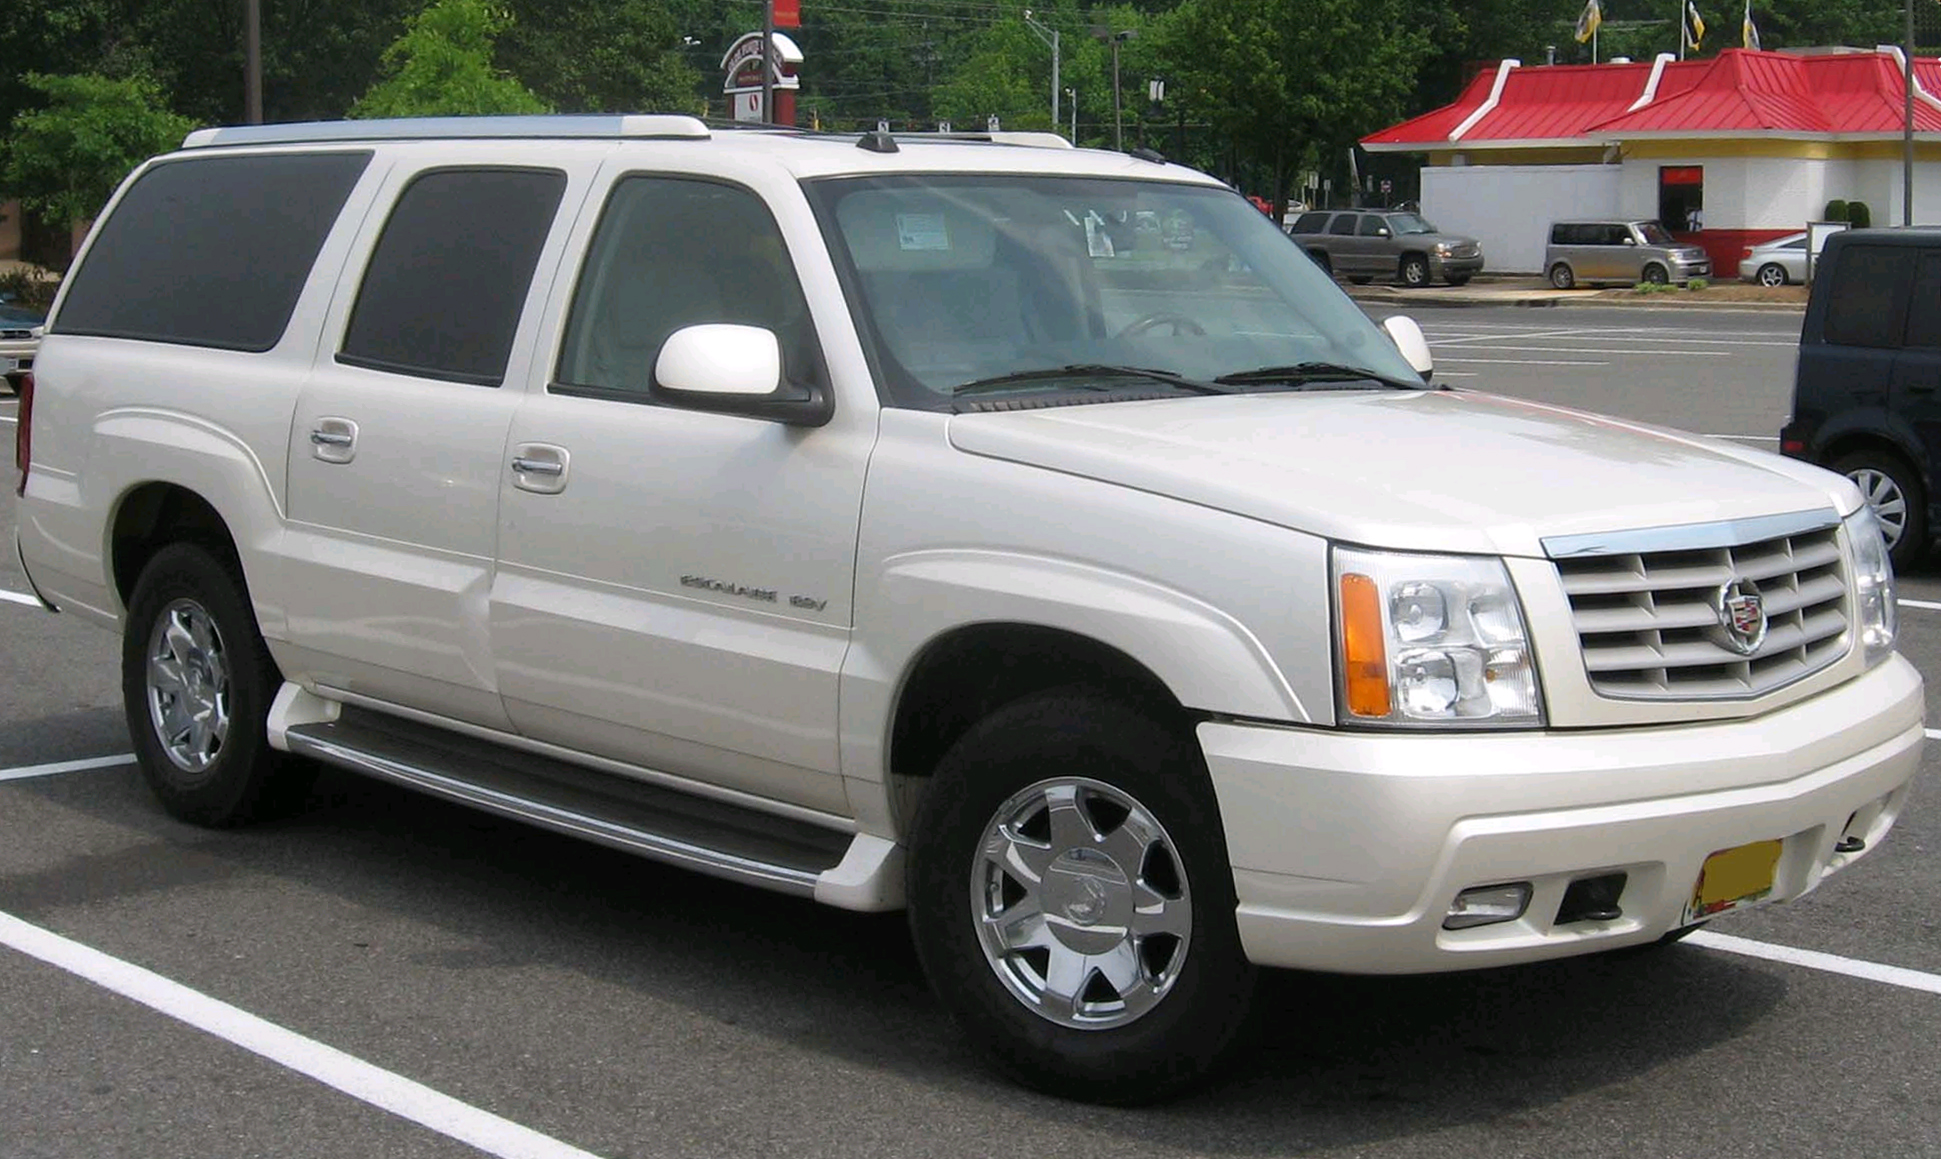 Cadillac Escalade - Tractor & Construction Plant Wiki - The classic ...